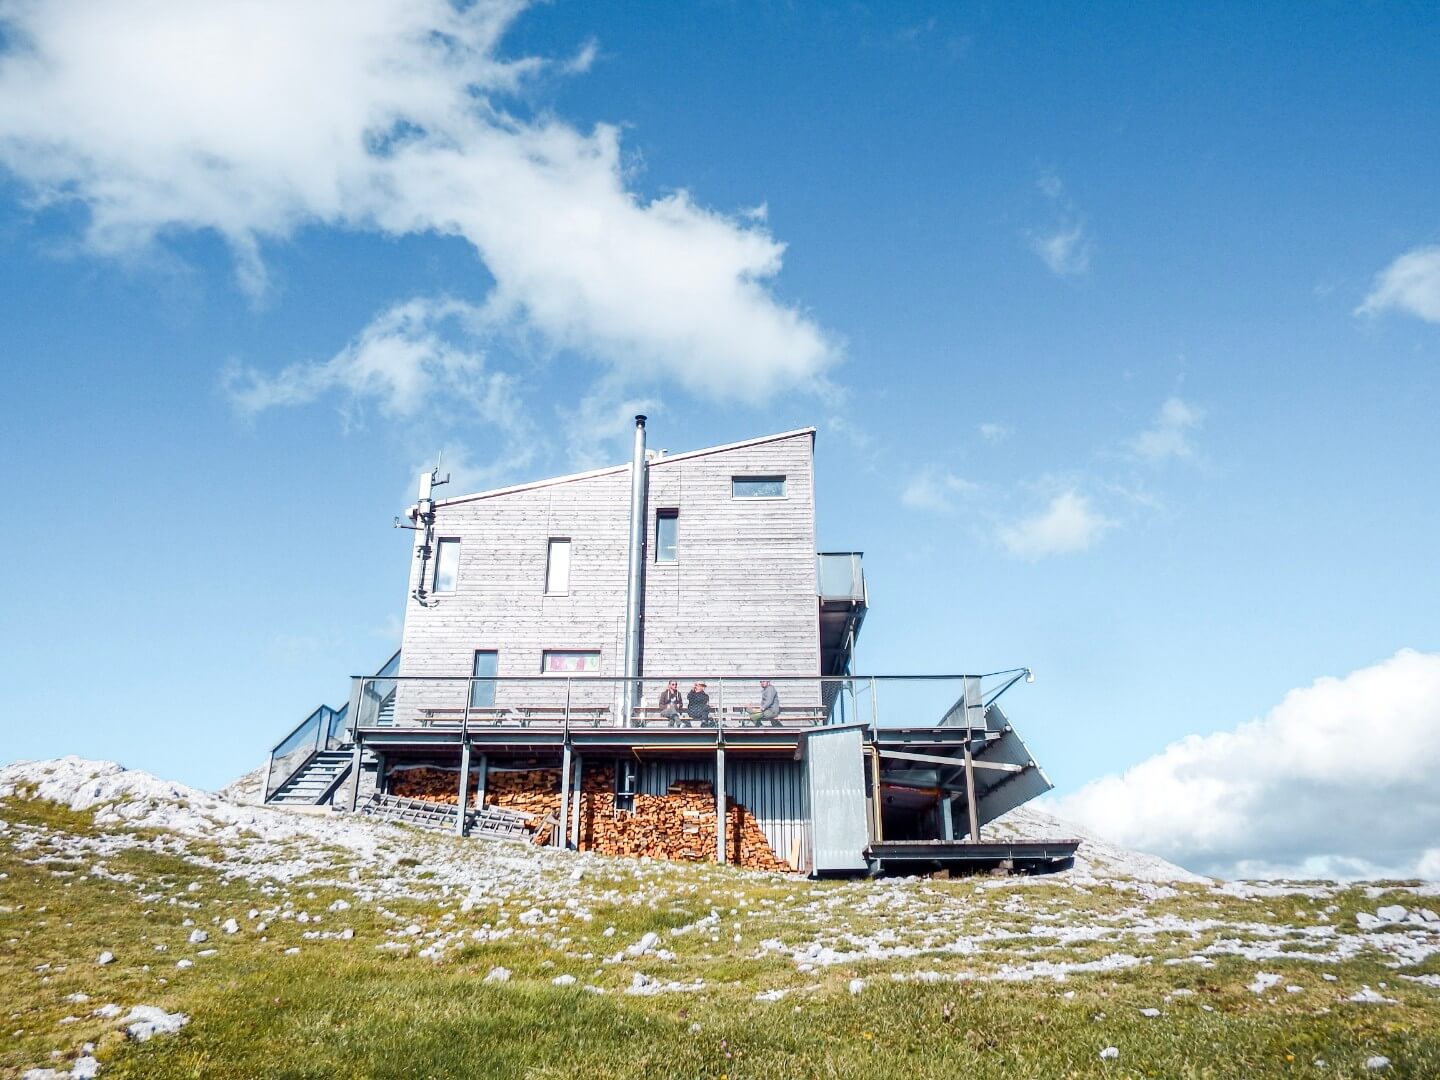 Schiestlhaus Mountain Hut, Hochschwab Mountains